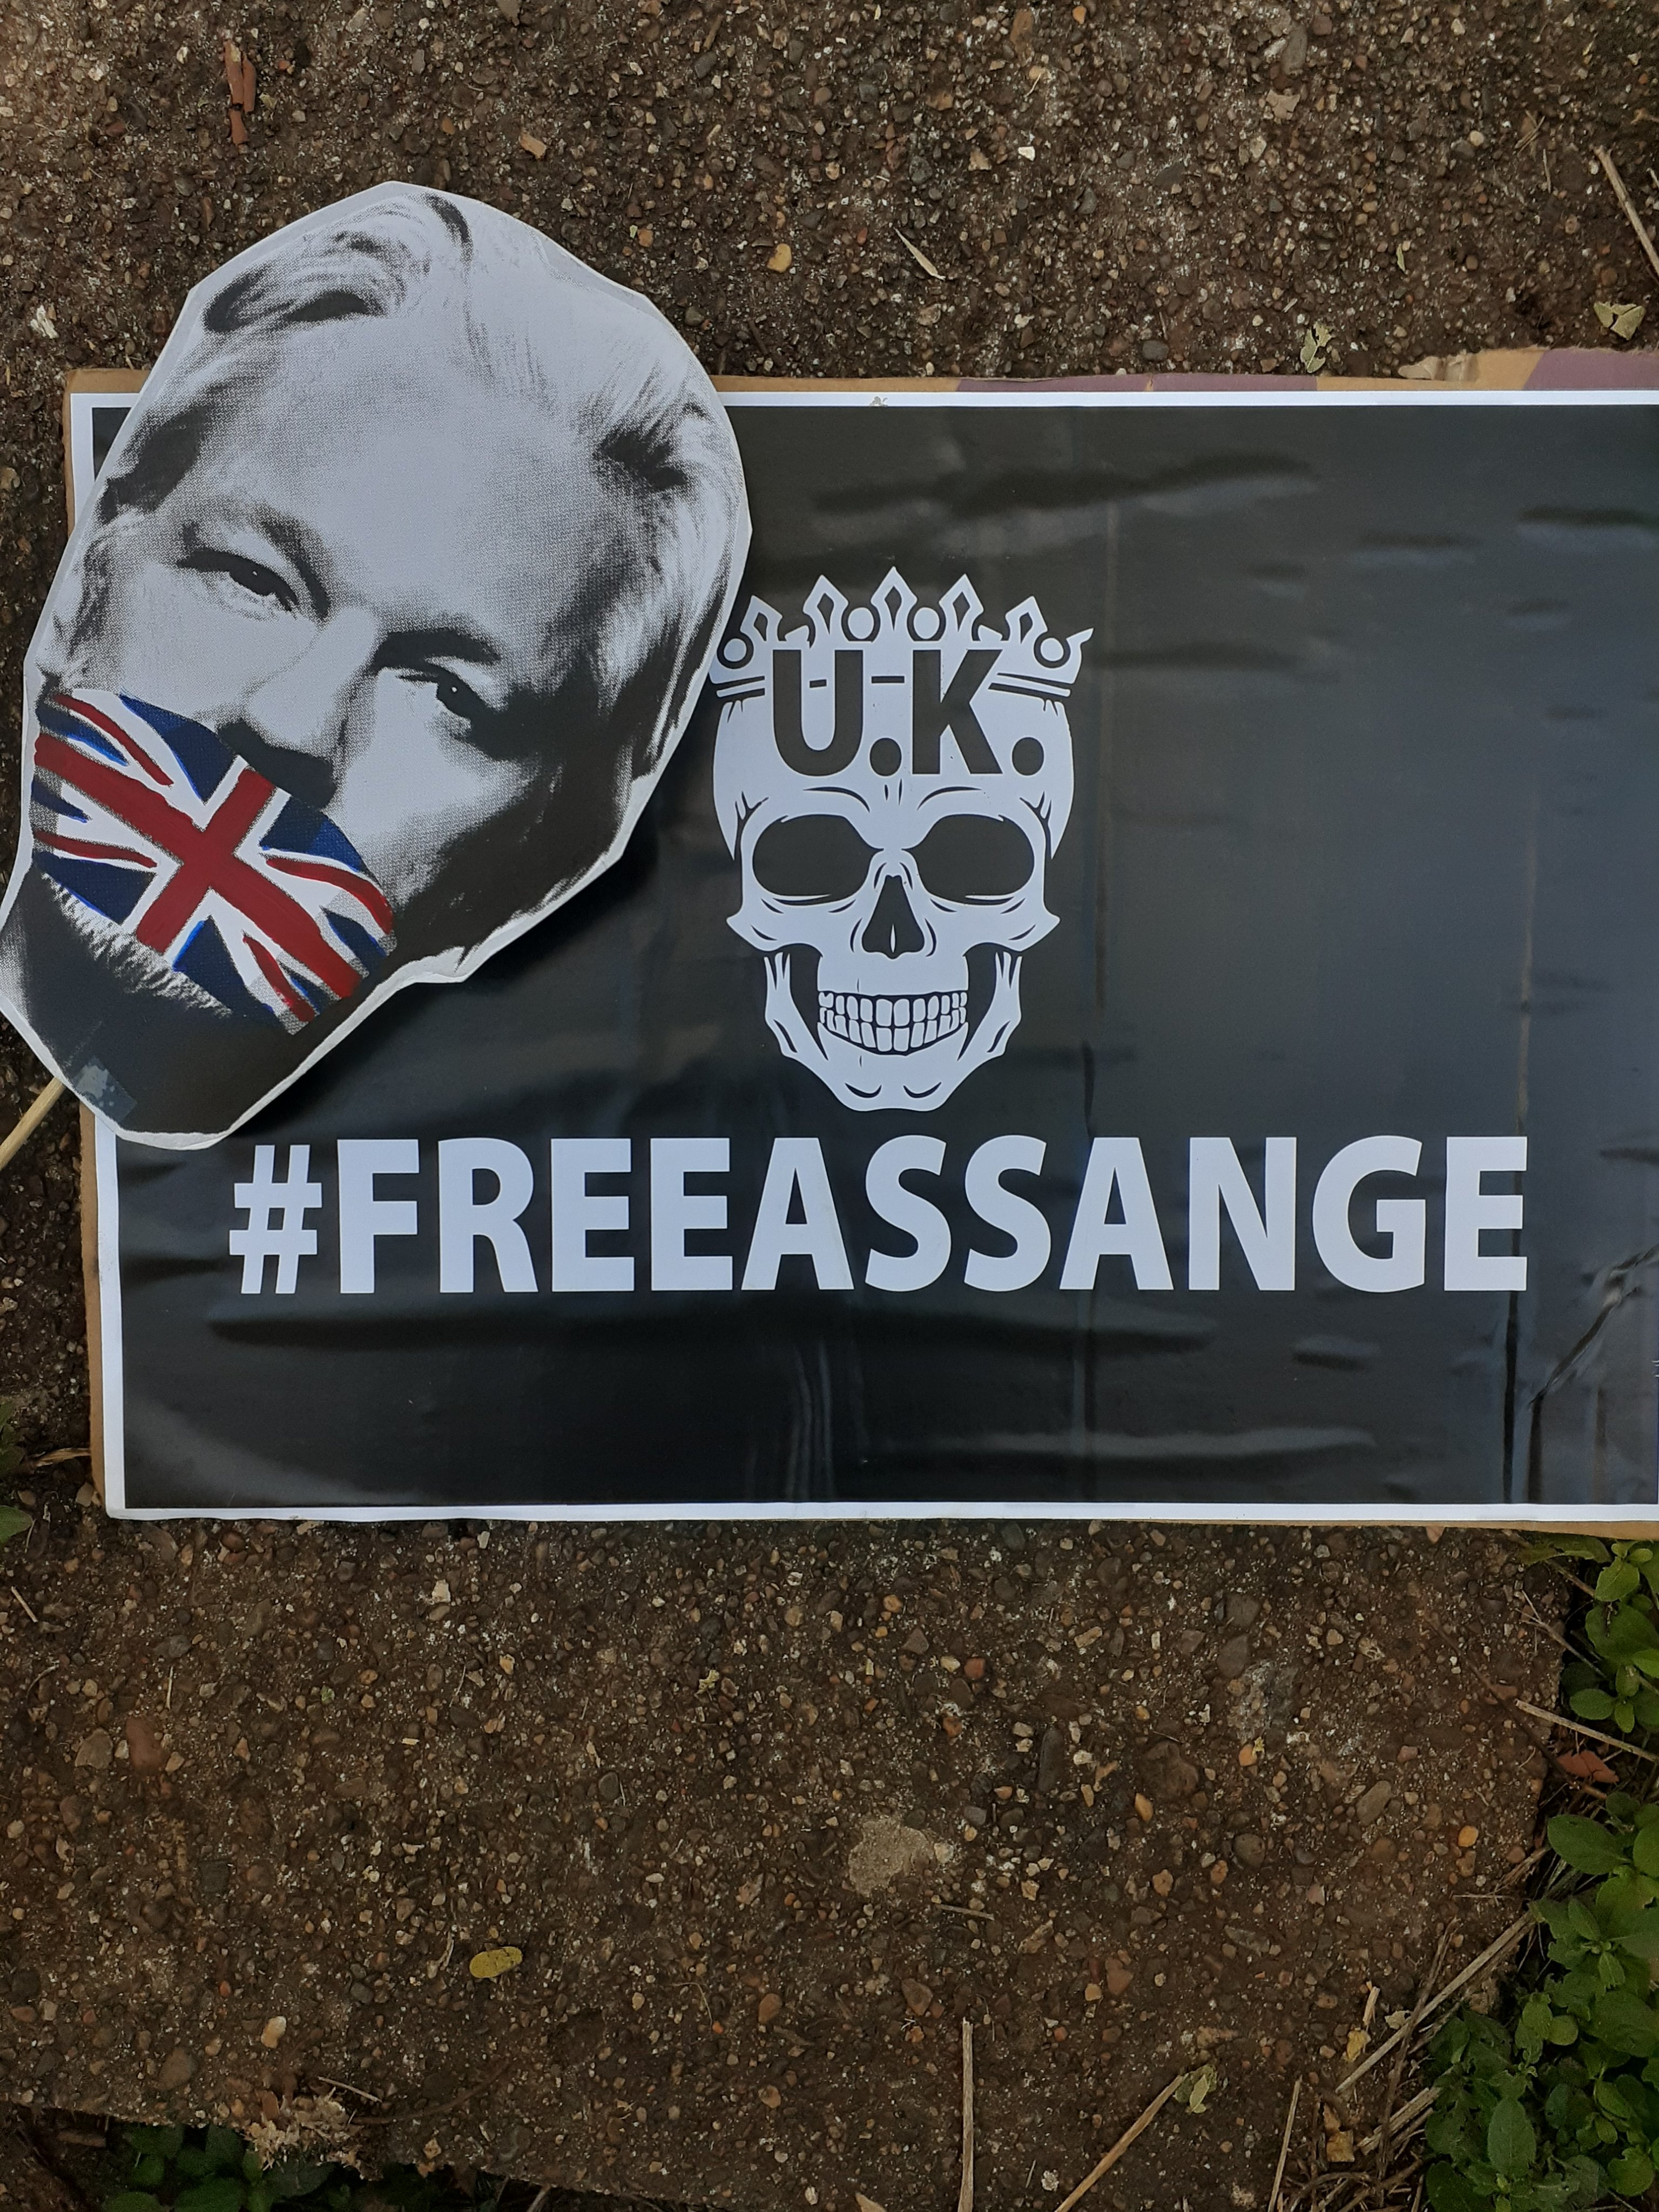 uk-free-assange-sept20.jpeg